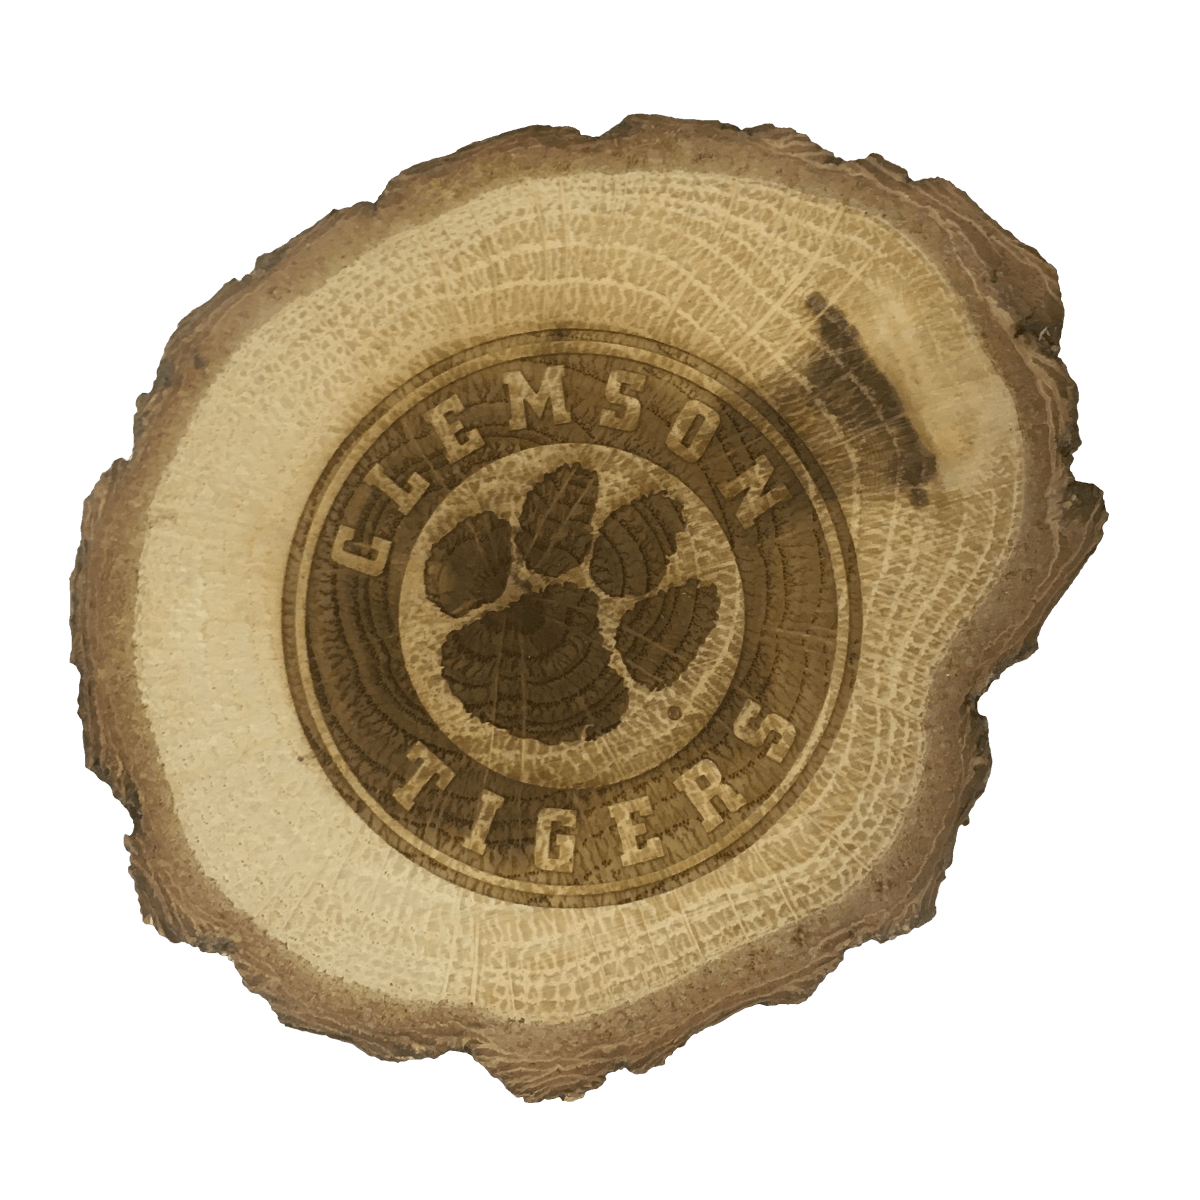 Clemson Magnet Wood Slice - Mr. Knickerbocker